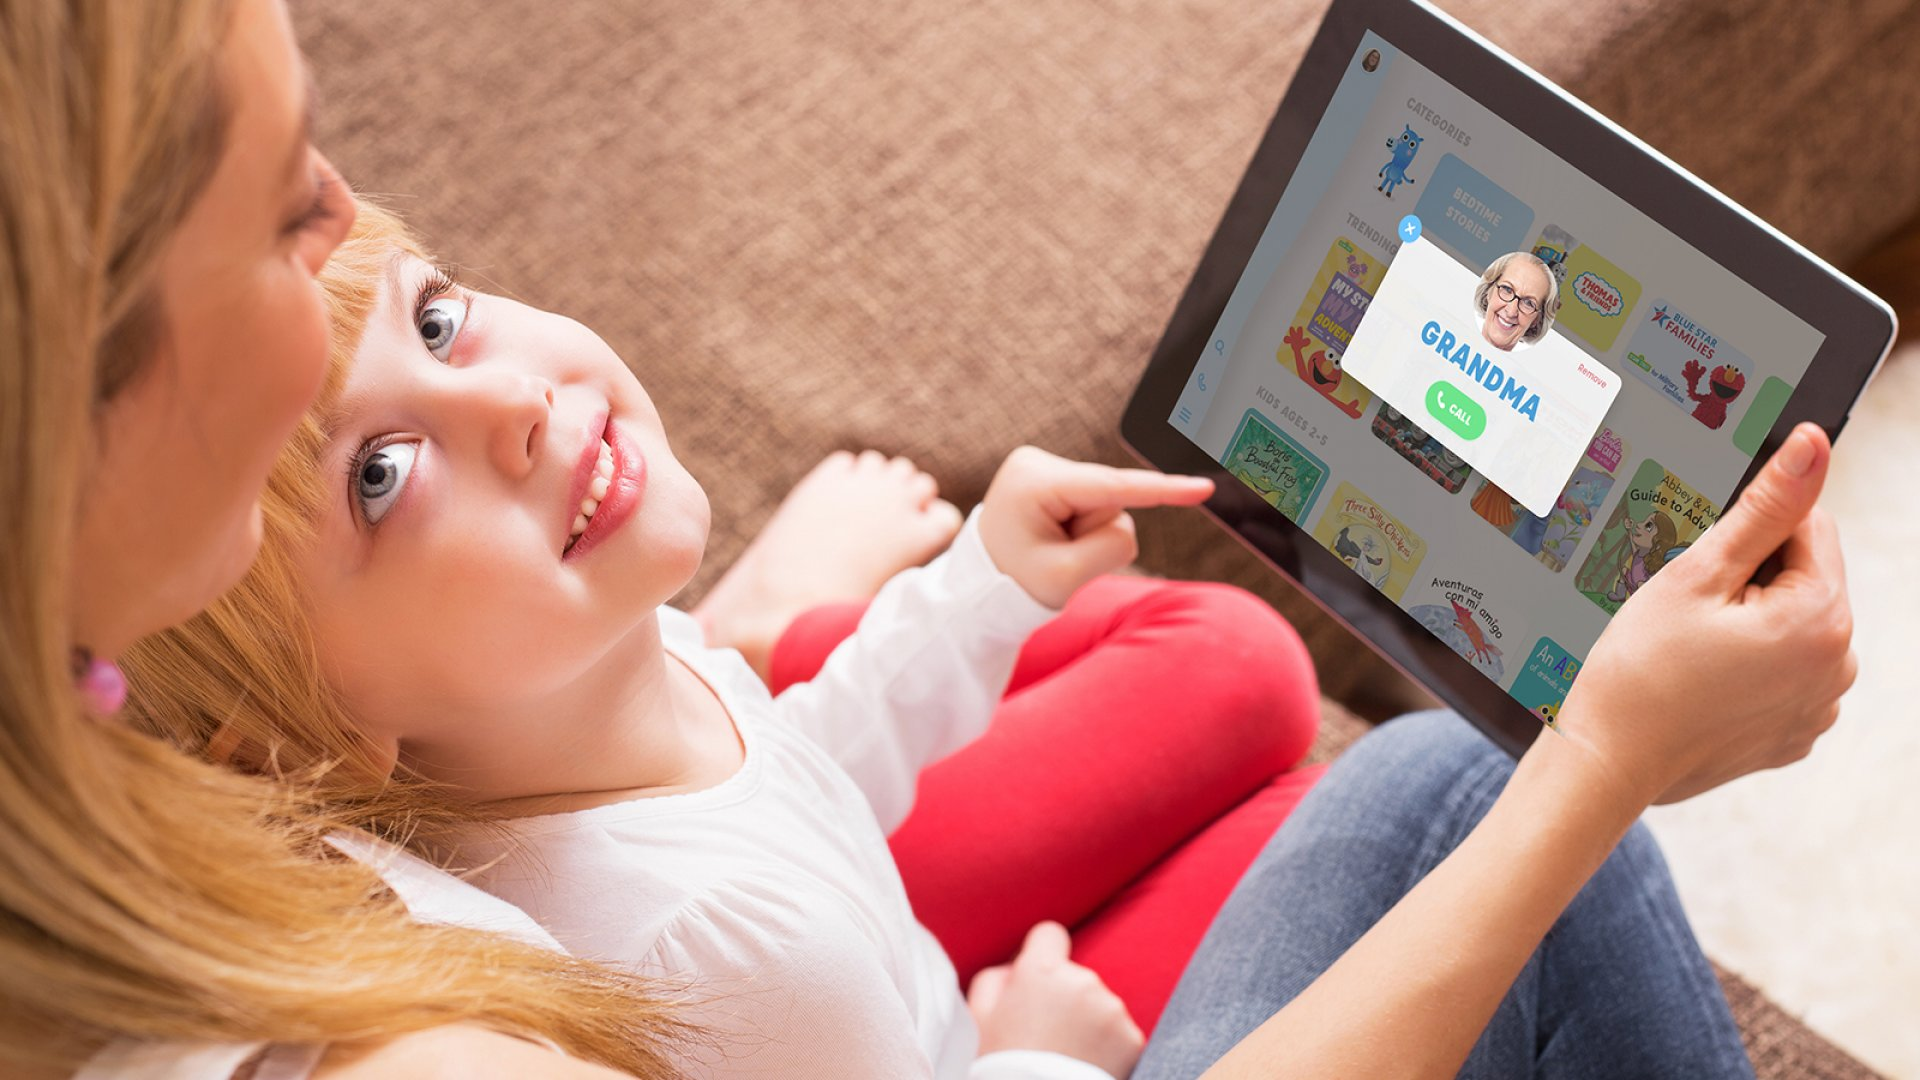 This Startup Is Rethinking the Video Call--for the Benefit of Children